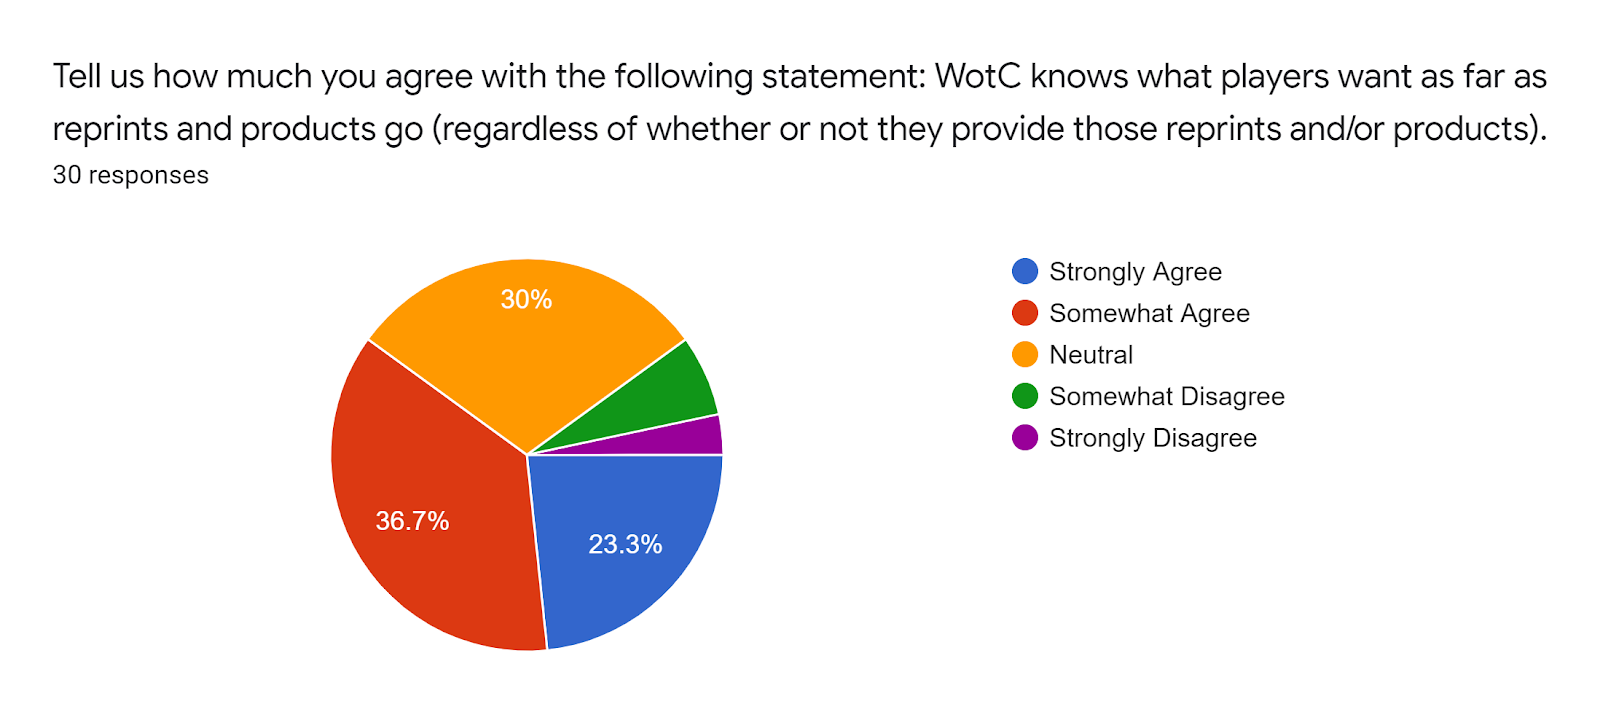 Forms response chart Question title Tell us how much you agree with the following statement WotC knows what players want as far as reprints and products go regardless of whether or not they provide those reprints andor products Number of responses 30 responses